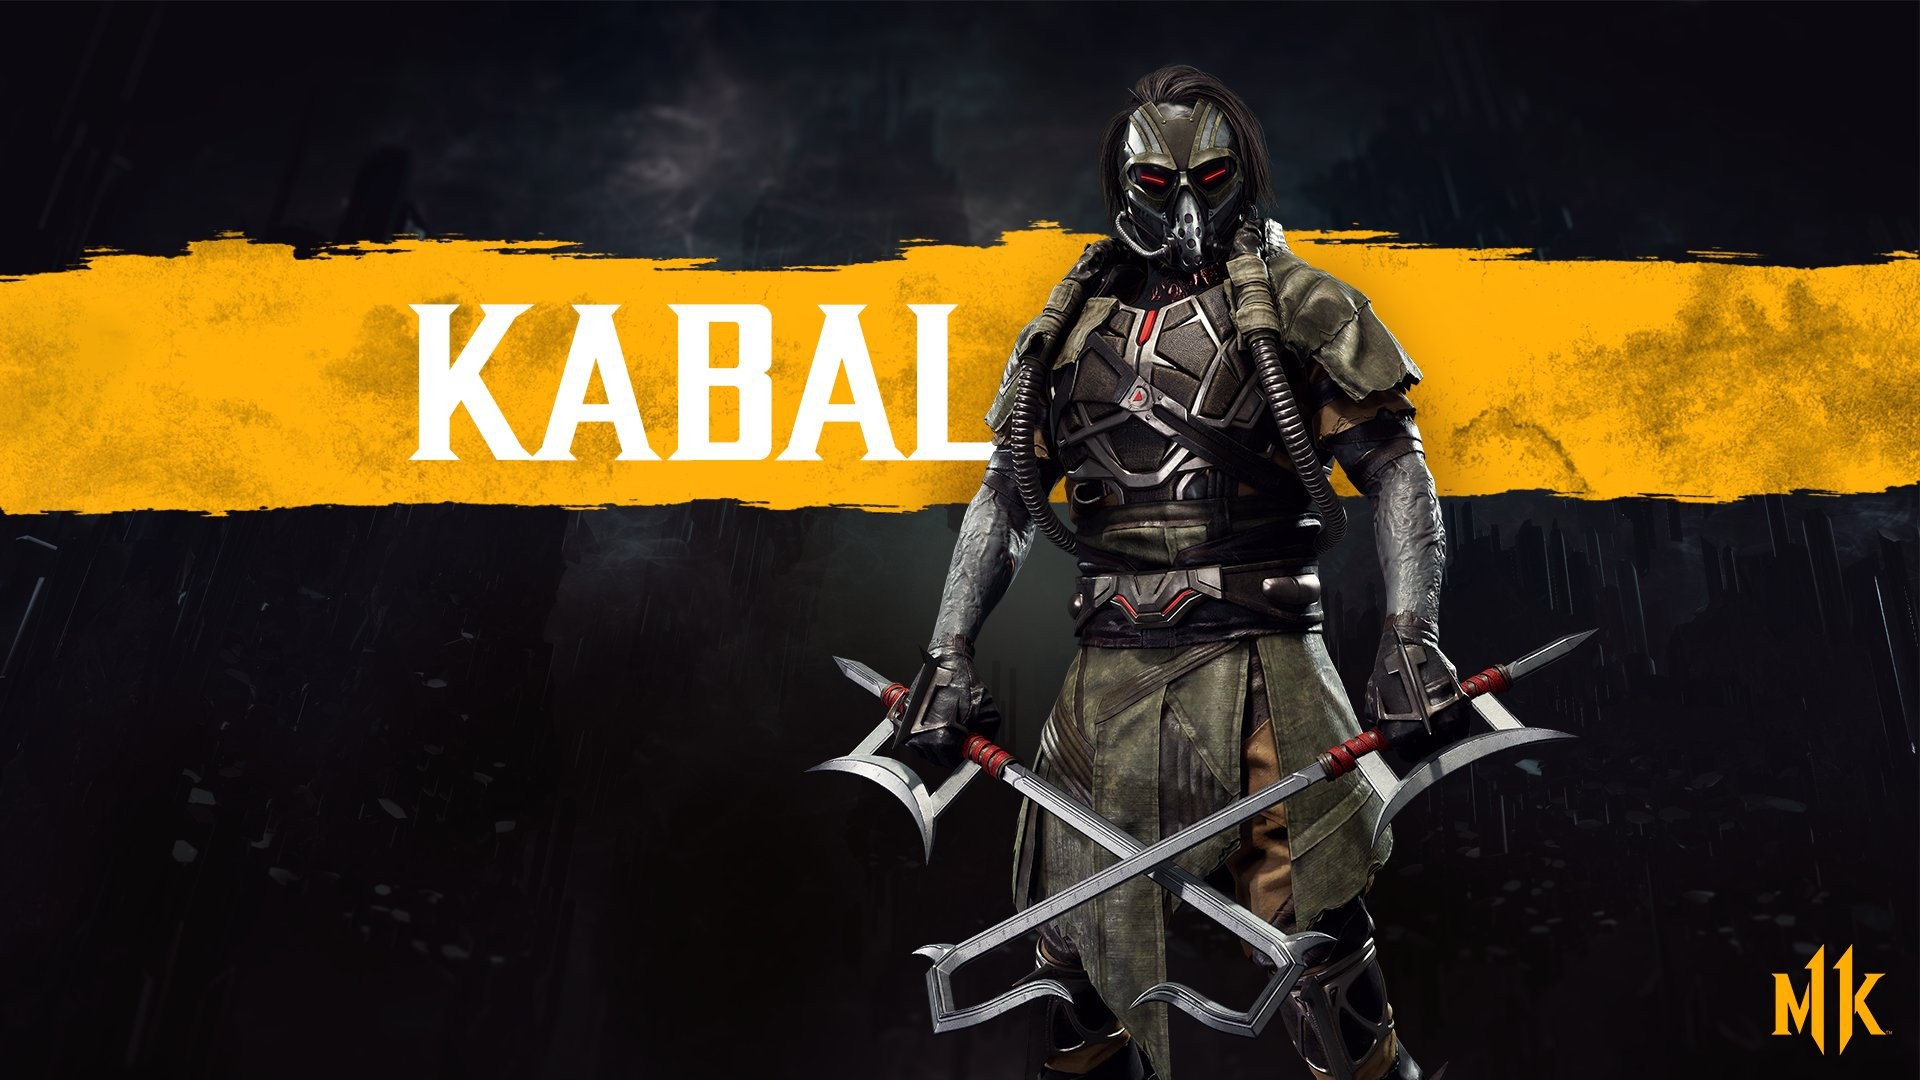 General 1920x1080 Mortal Kombat 11 video games Video Game Warriors